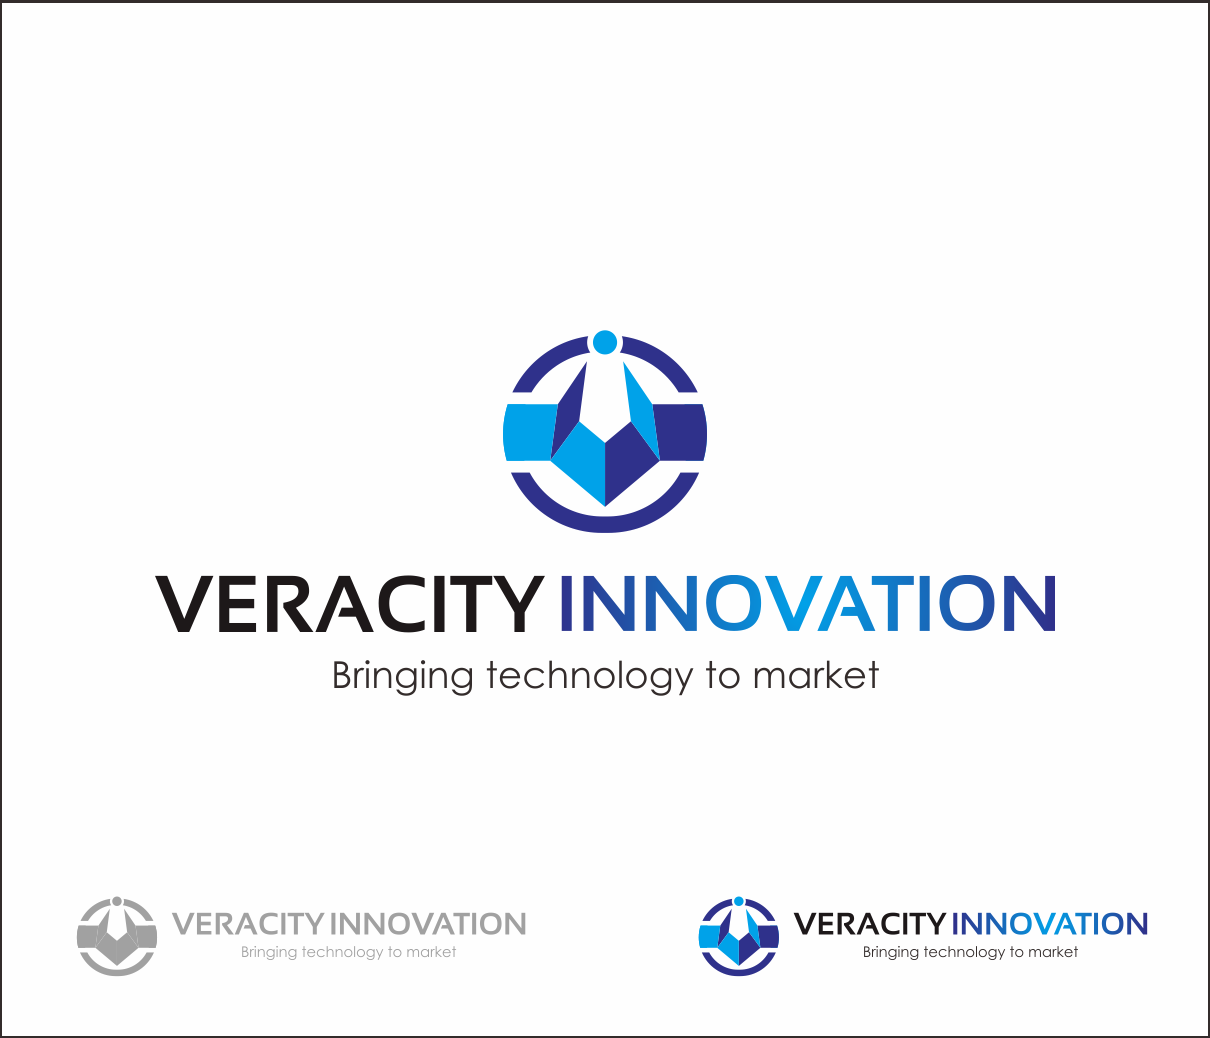 Logo Design by Armada Jamaluddin - Entry No. 249 in the Logo Design Contest Creative Logo Design for Veracity Innovation, LLC.